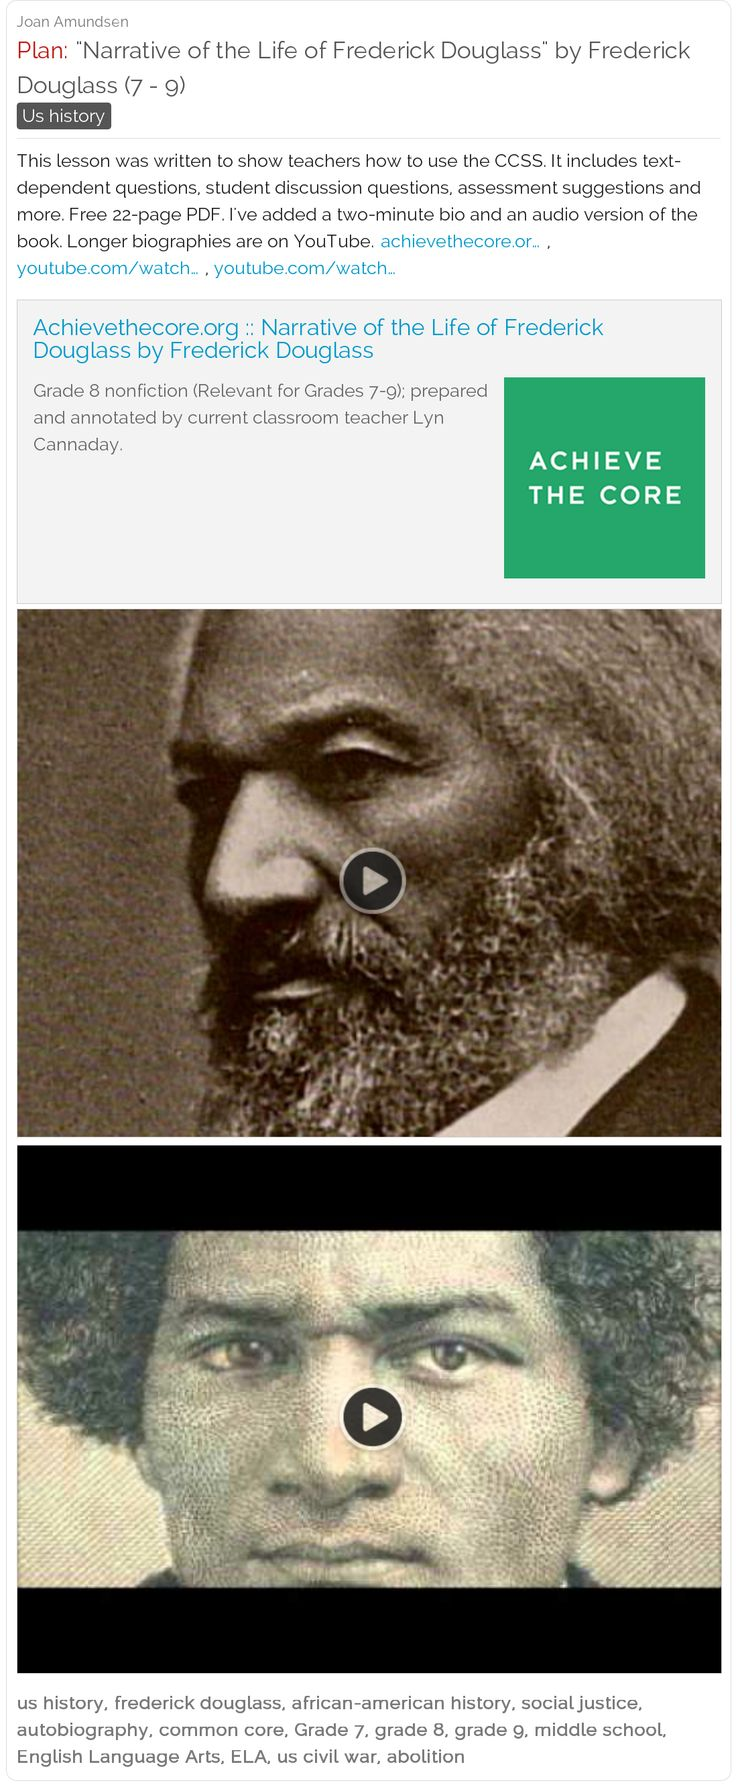 17 best ideas about frederick douglass narrative narrative of the life of frederick douglass by frederick douglass 7 9